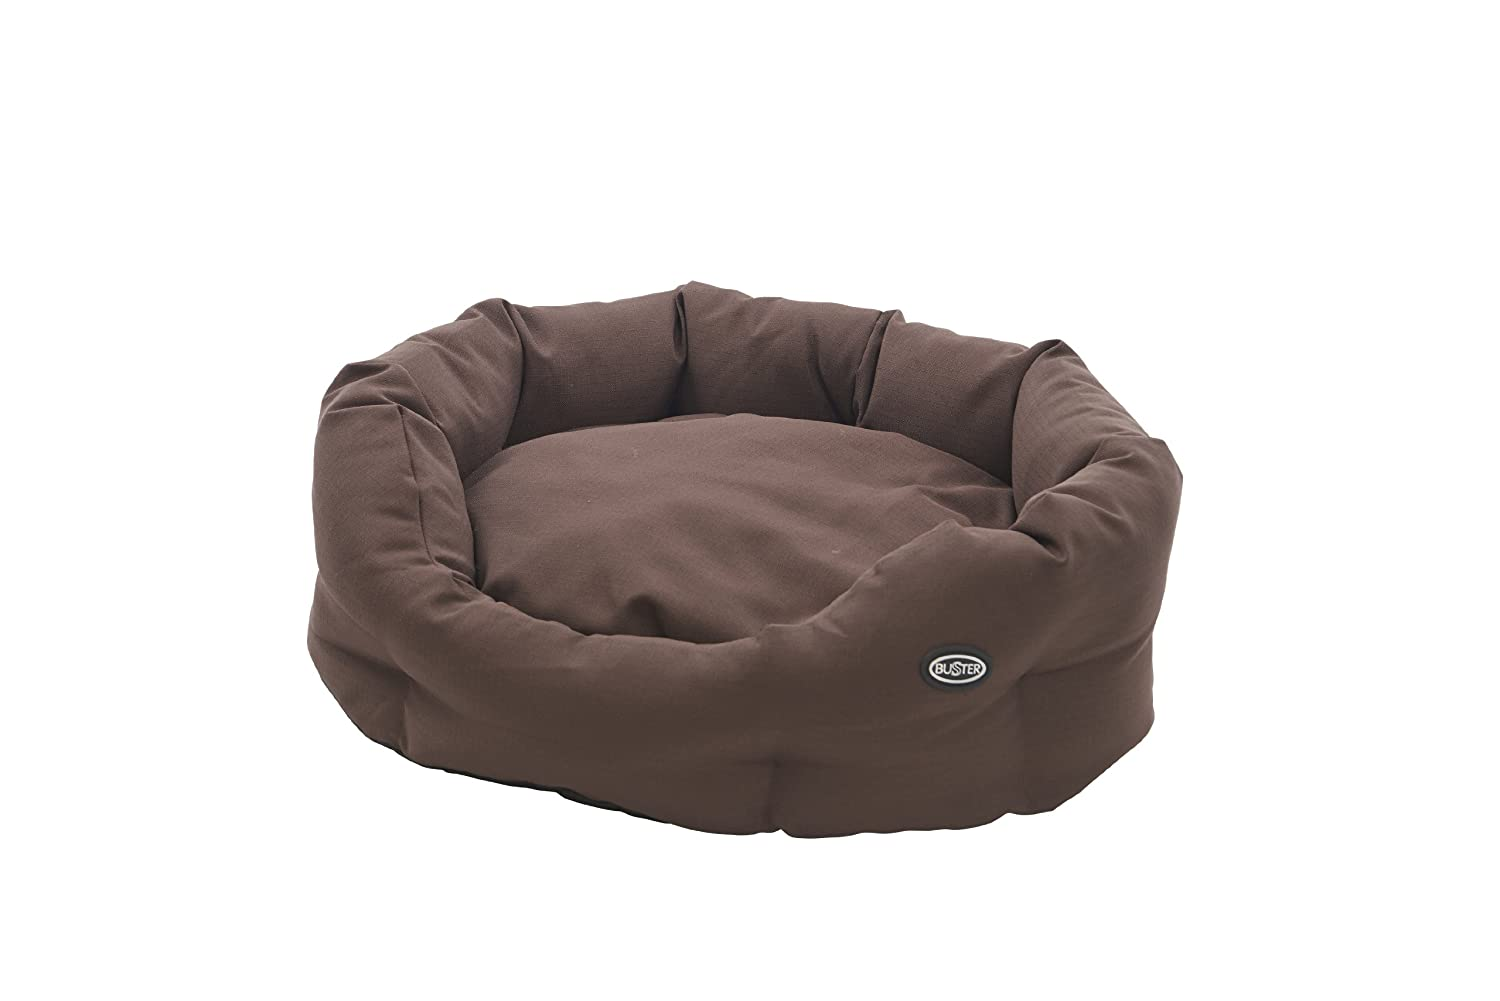 Buster Cocoon Bed 18 in, Bitter Chocolate